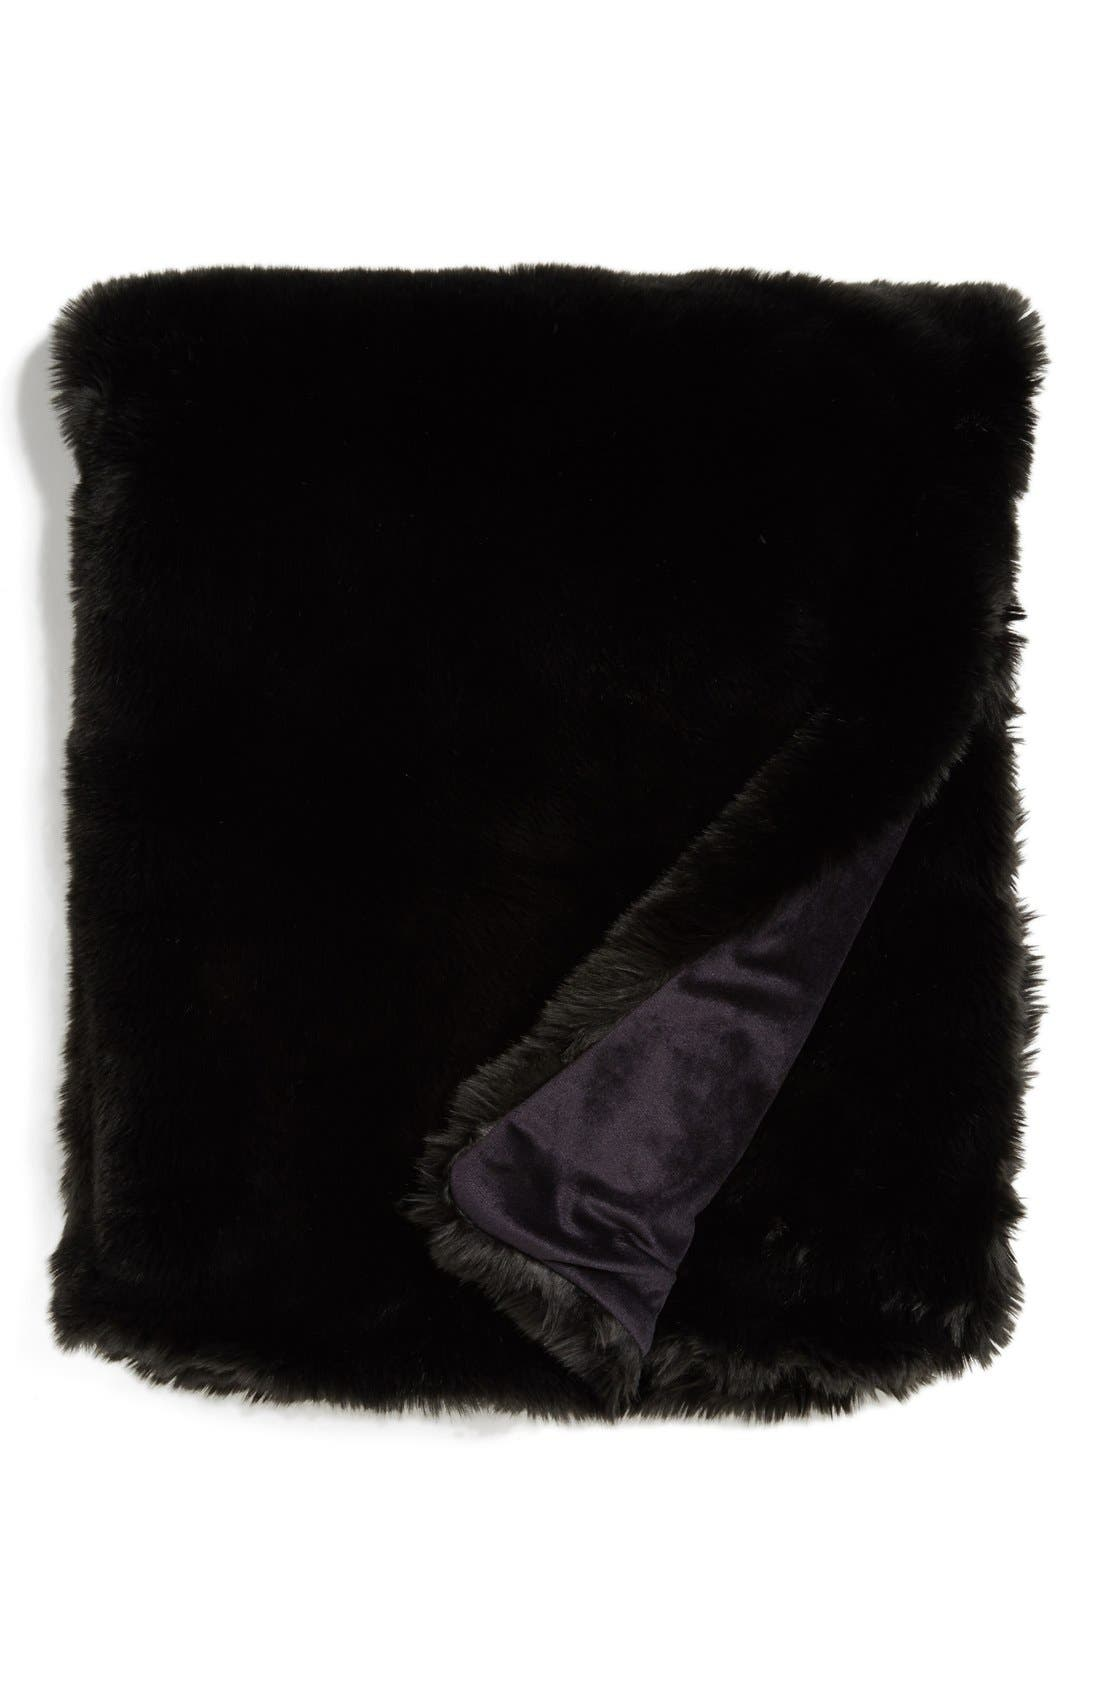 NORDSTROM AT HOME Faux Fur Throw, Main, color, 001